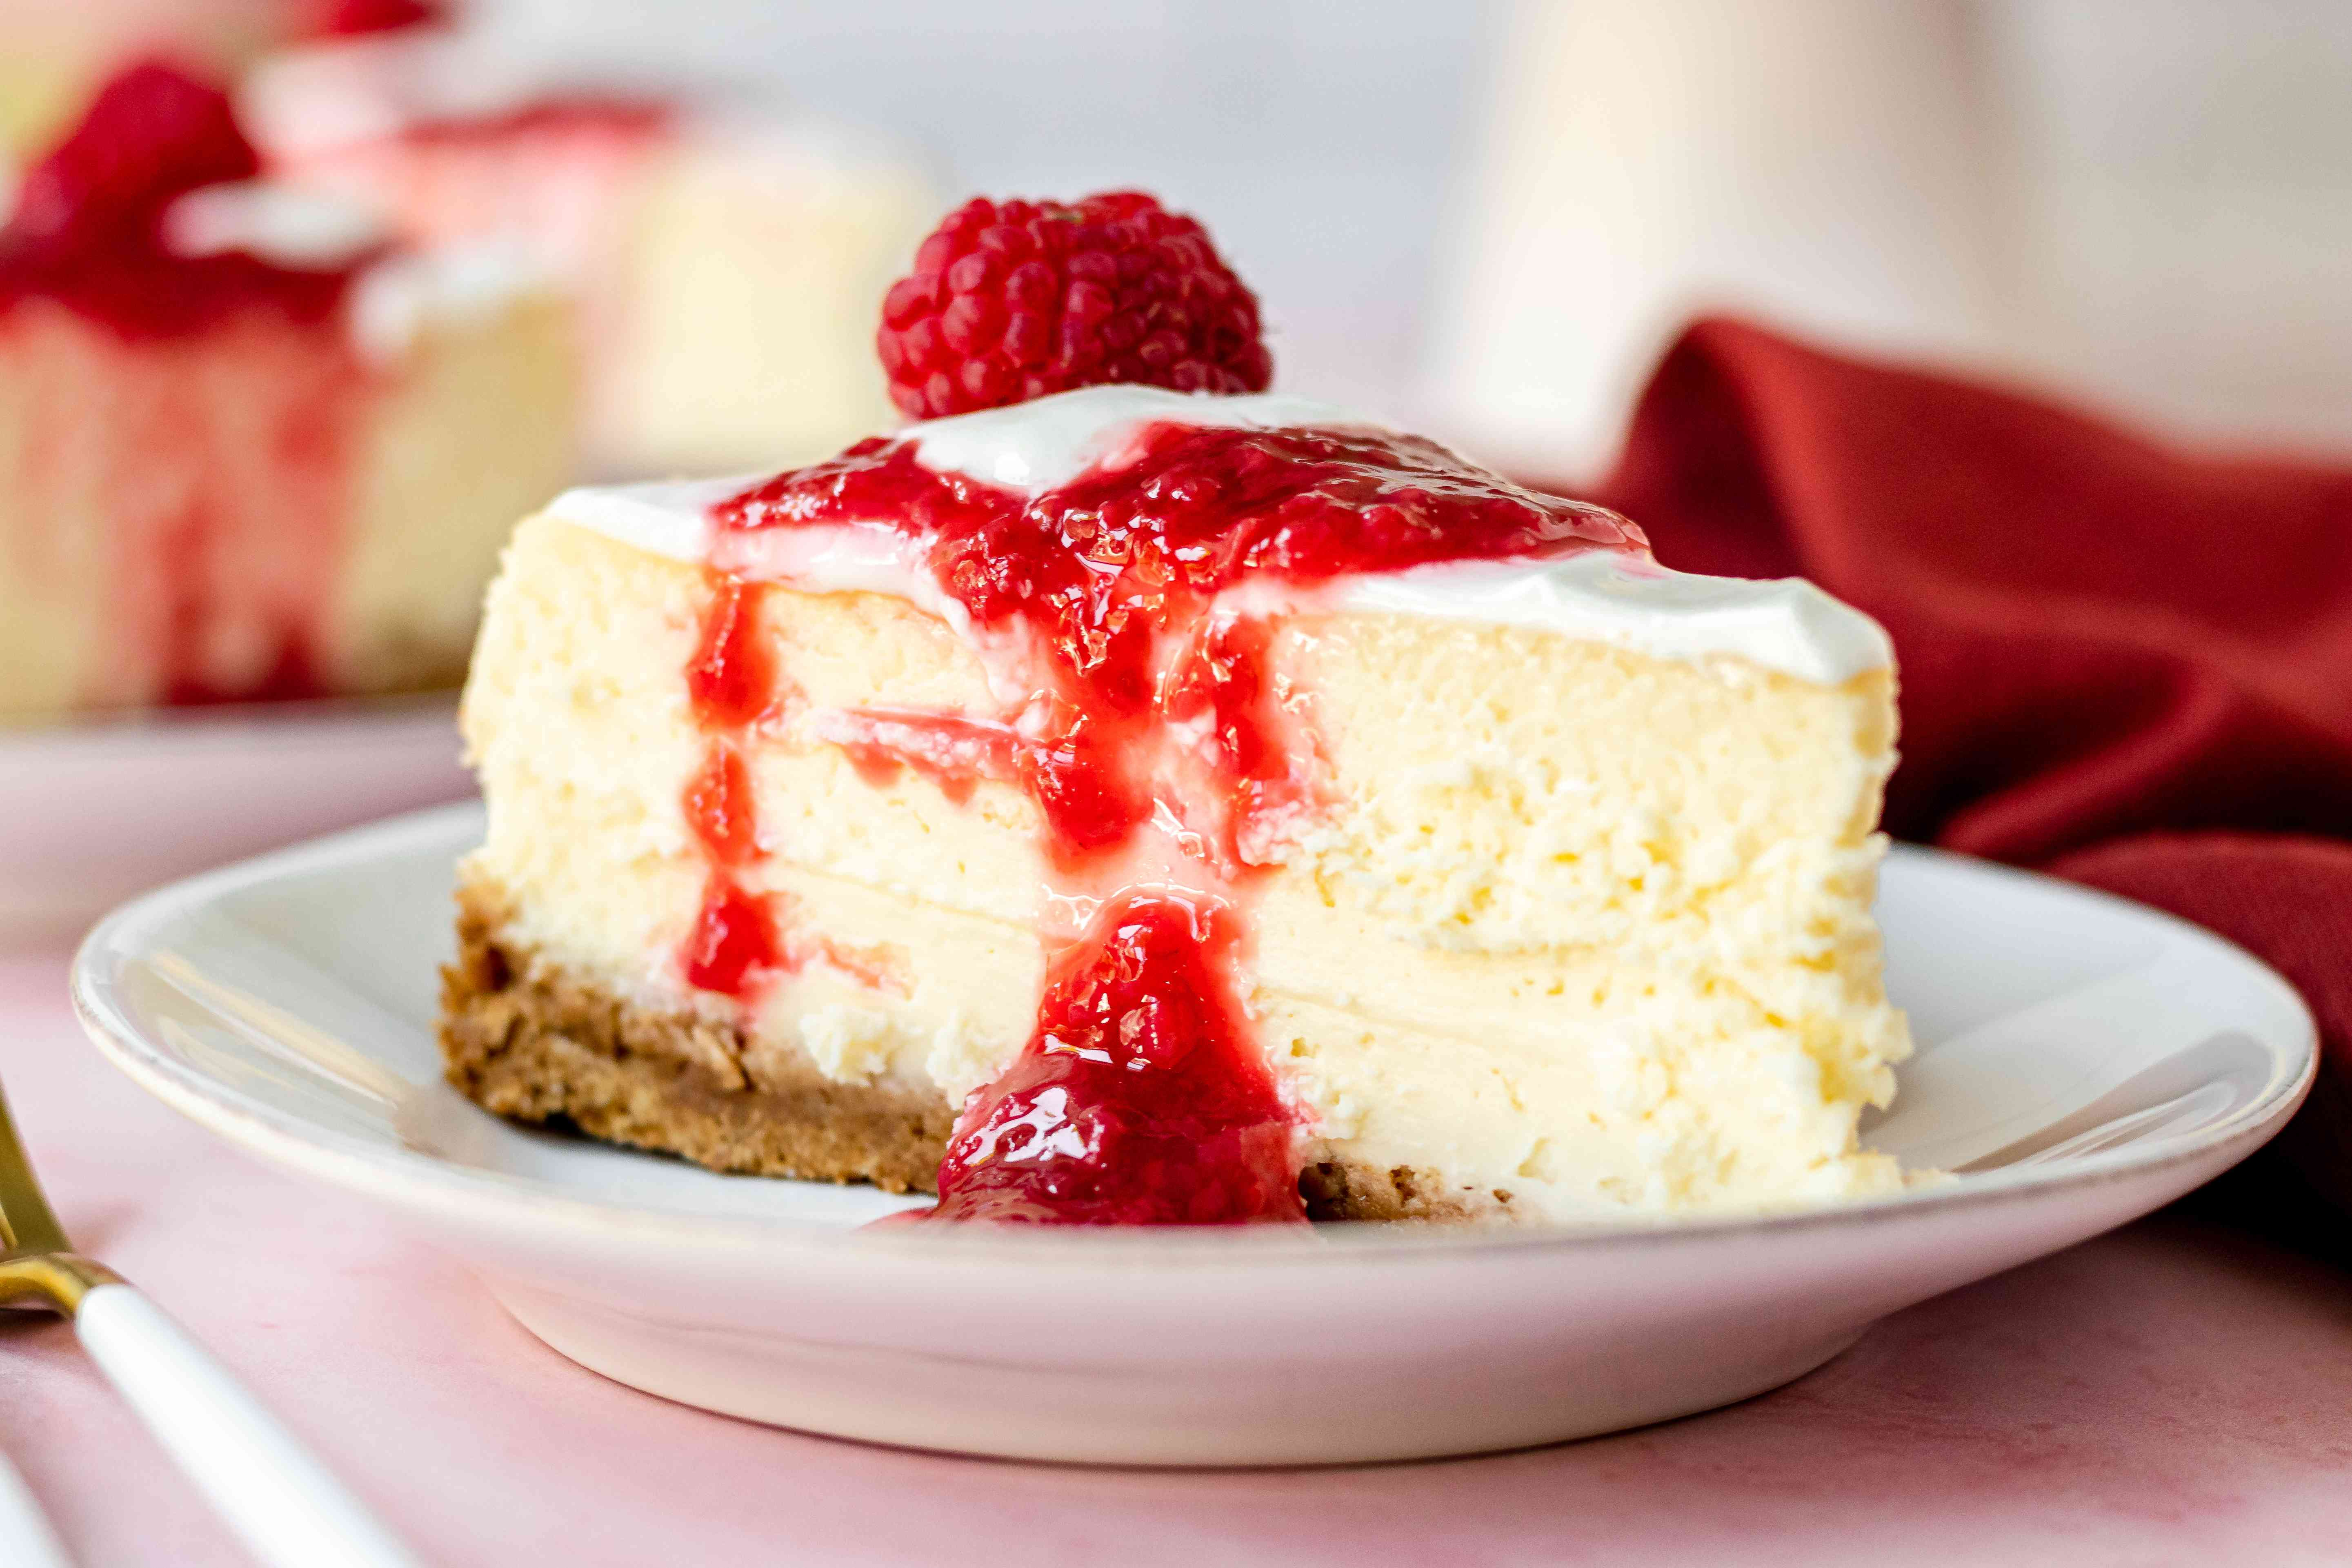 Side view of a slice of cheesecake topped with raspberry sauce.